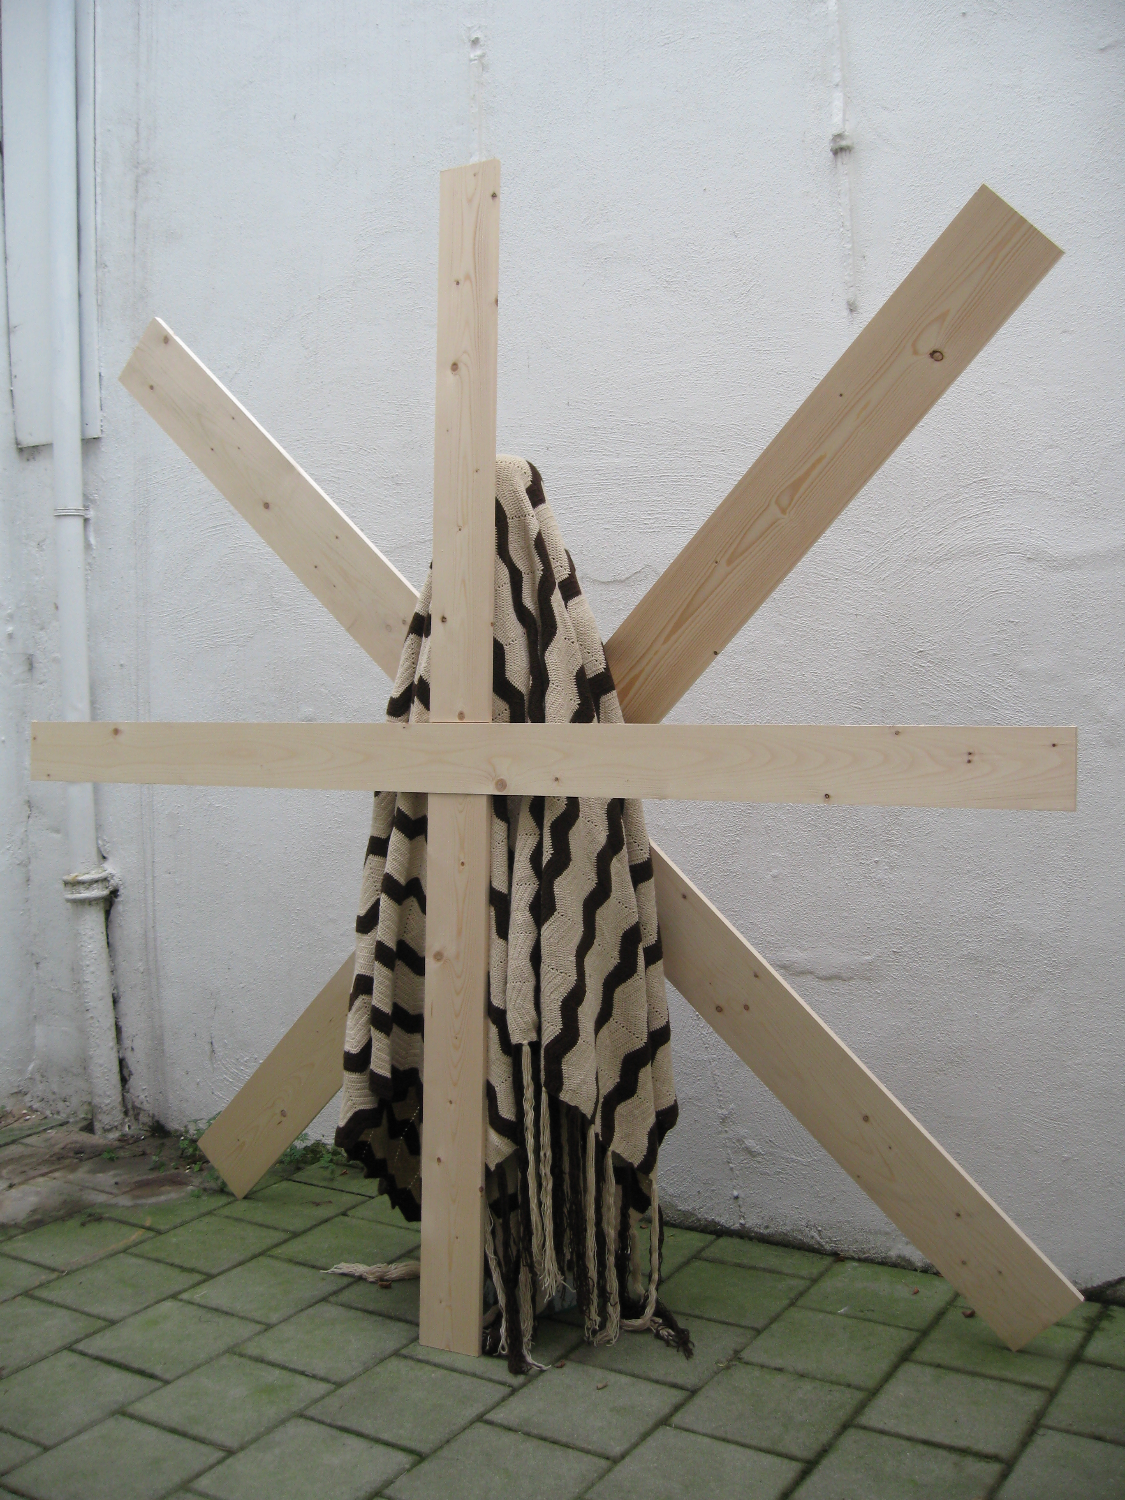 Figure and Crosses